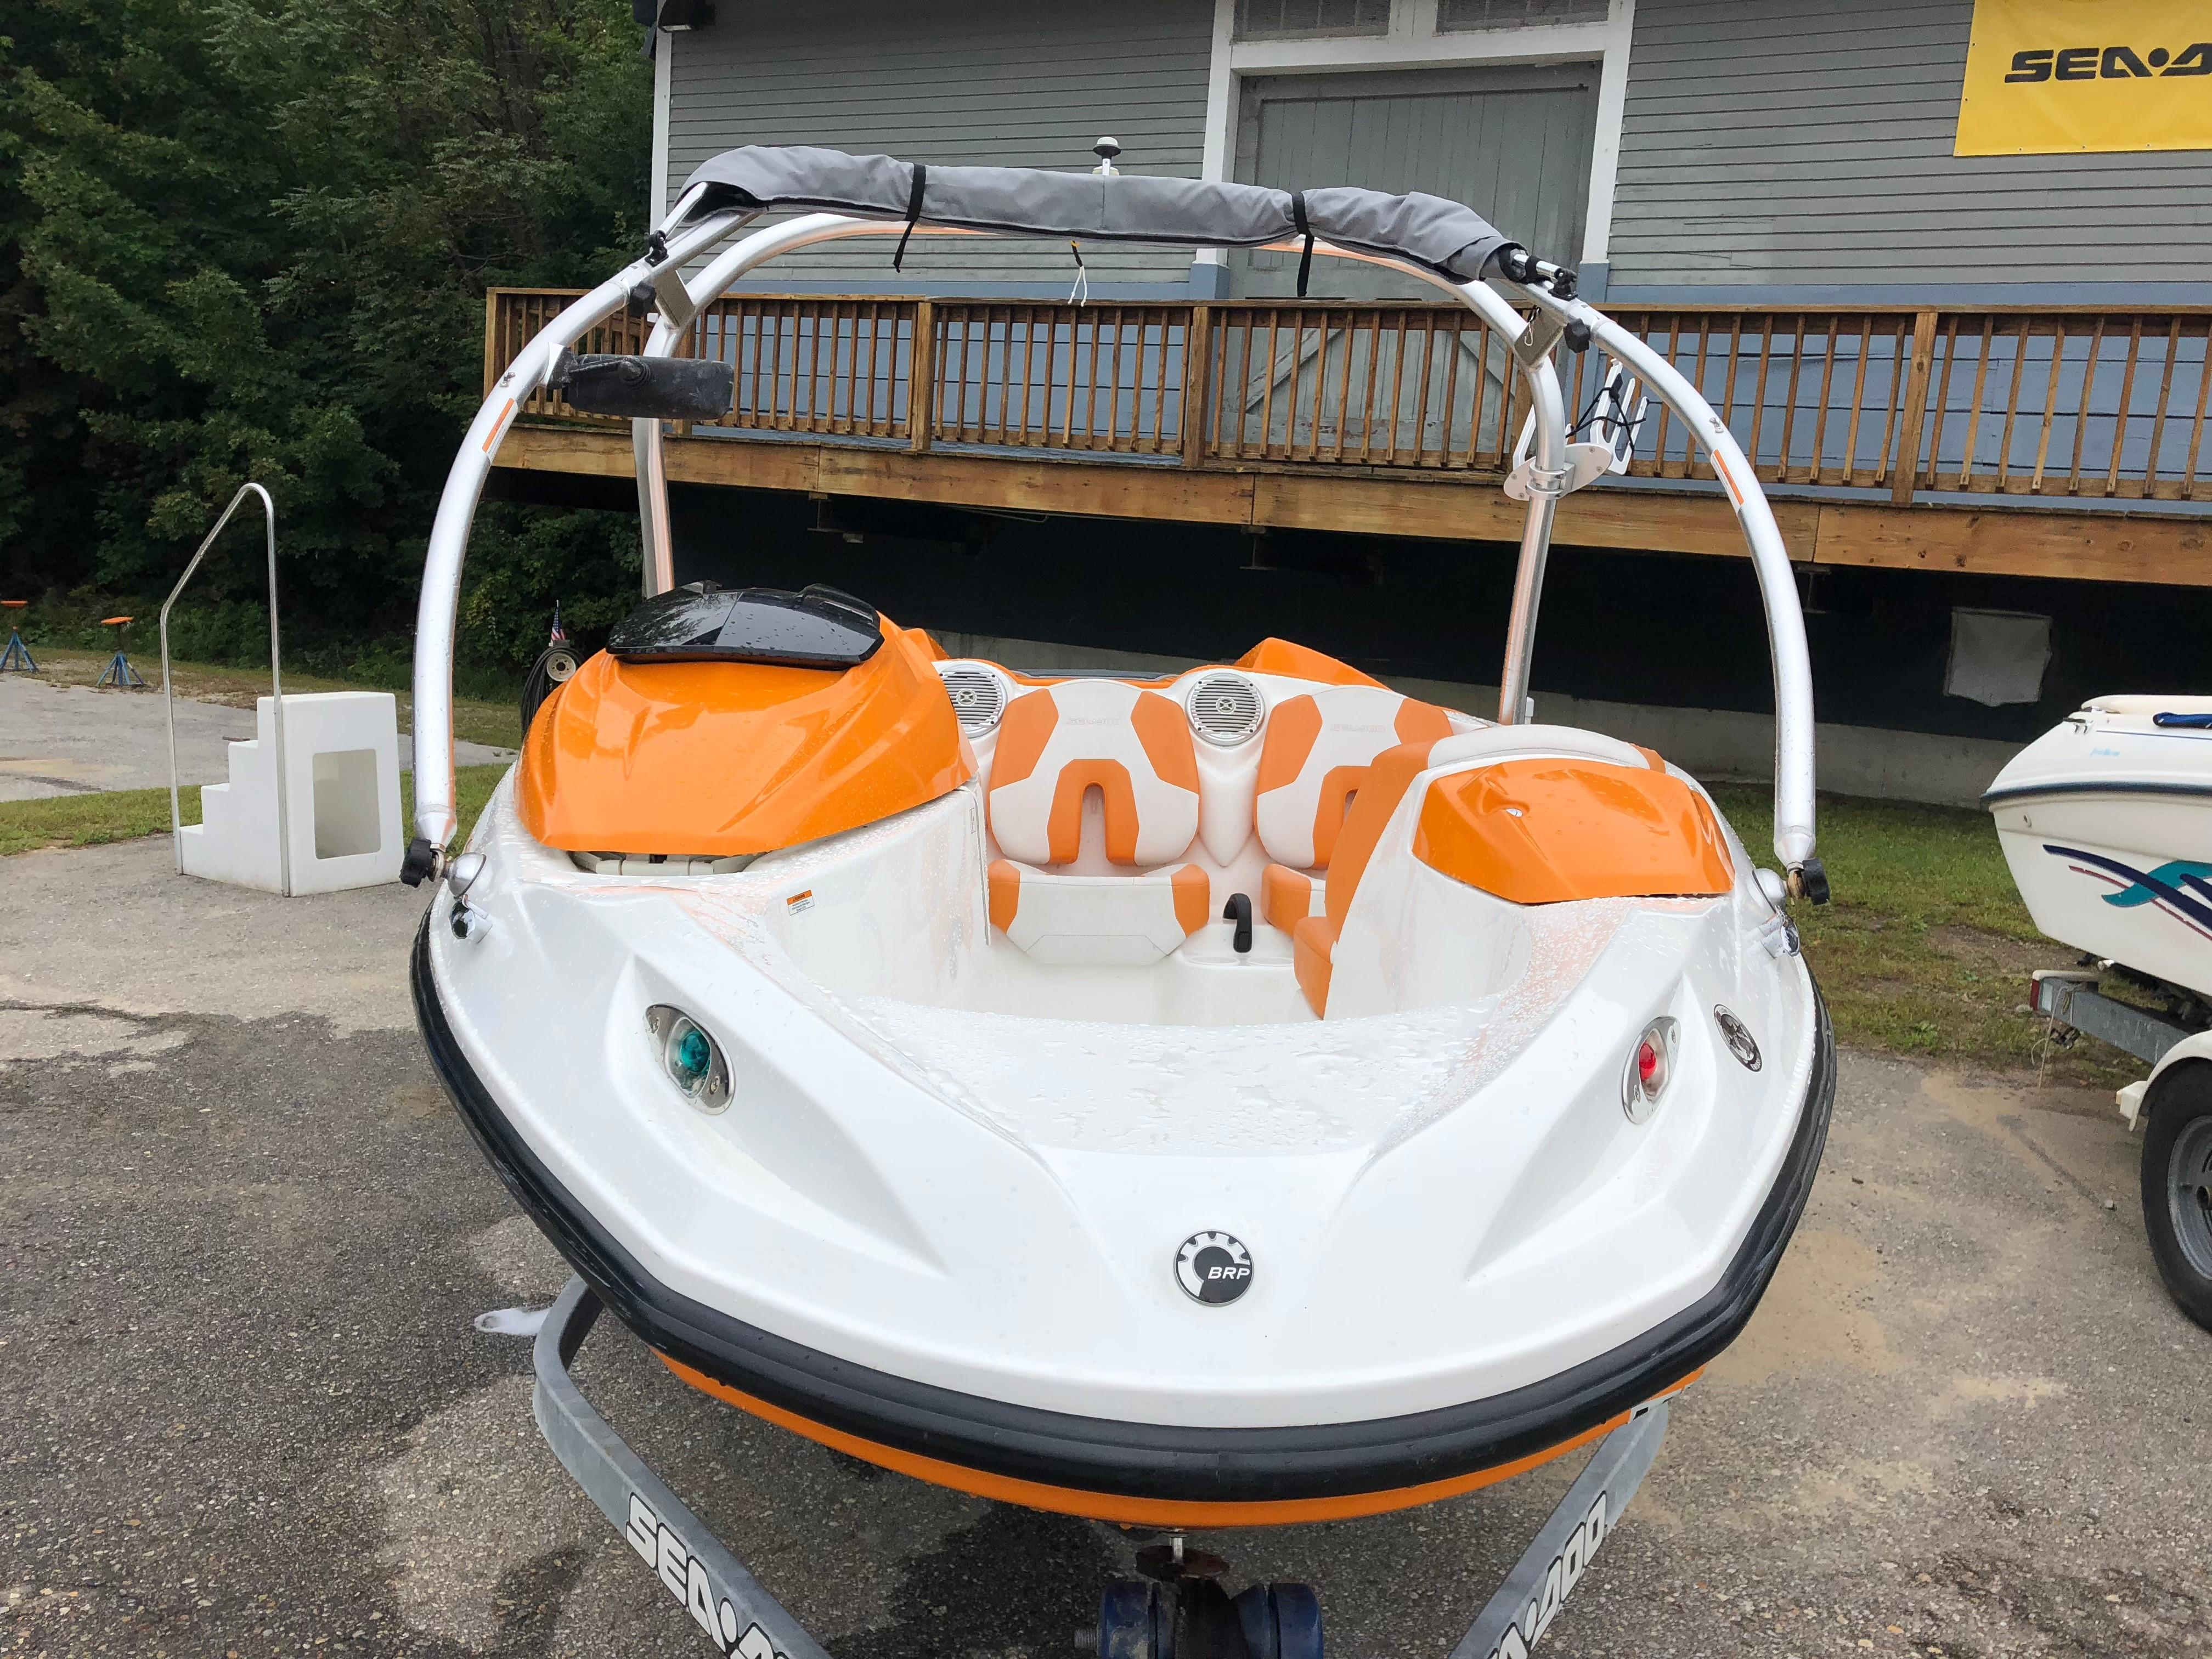 2012 Sea Doo Sportboat boat for sale, model of the boat is Speedster 150 & Image # 6 of 11